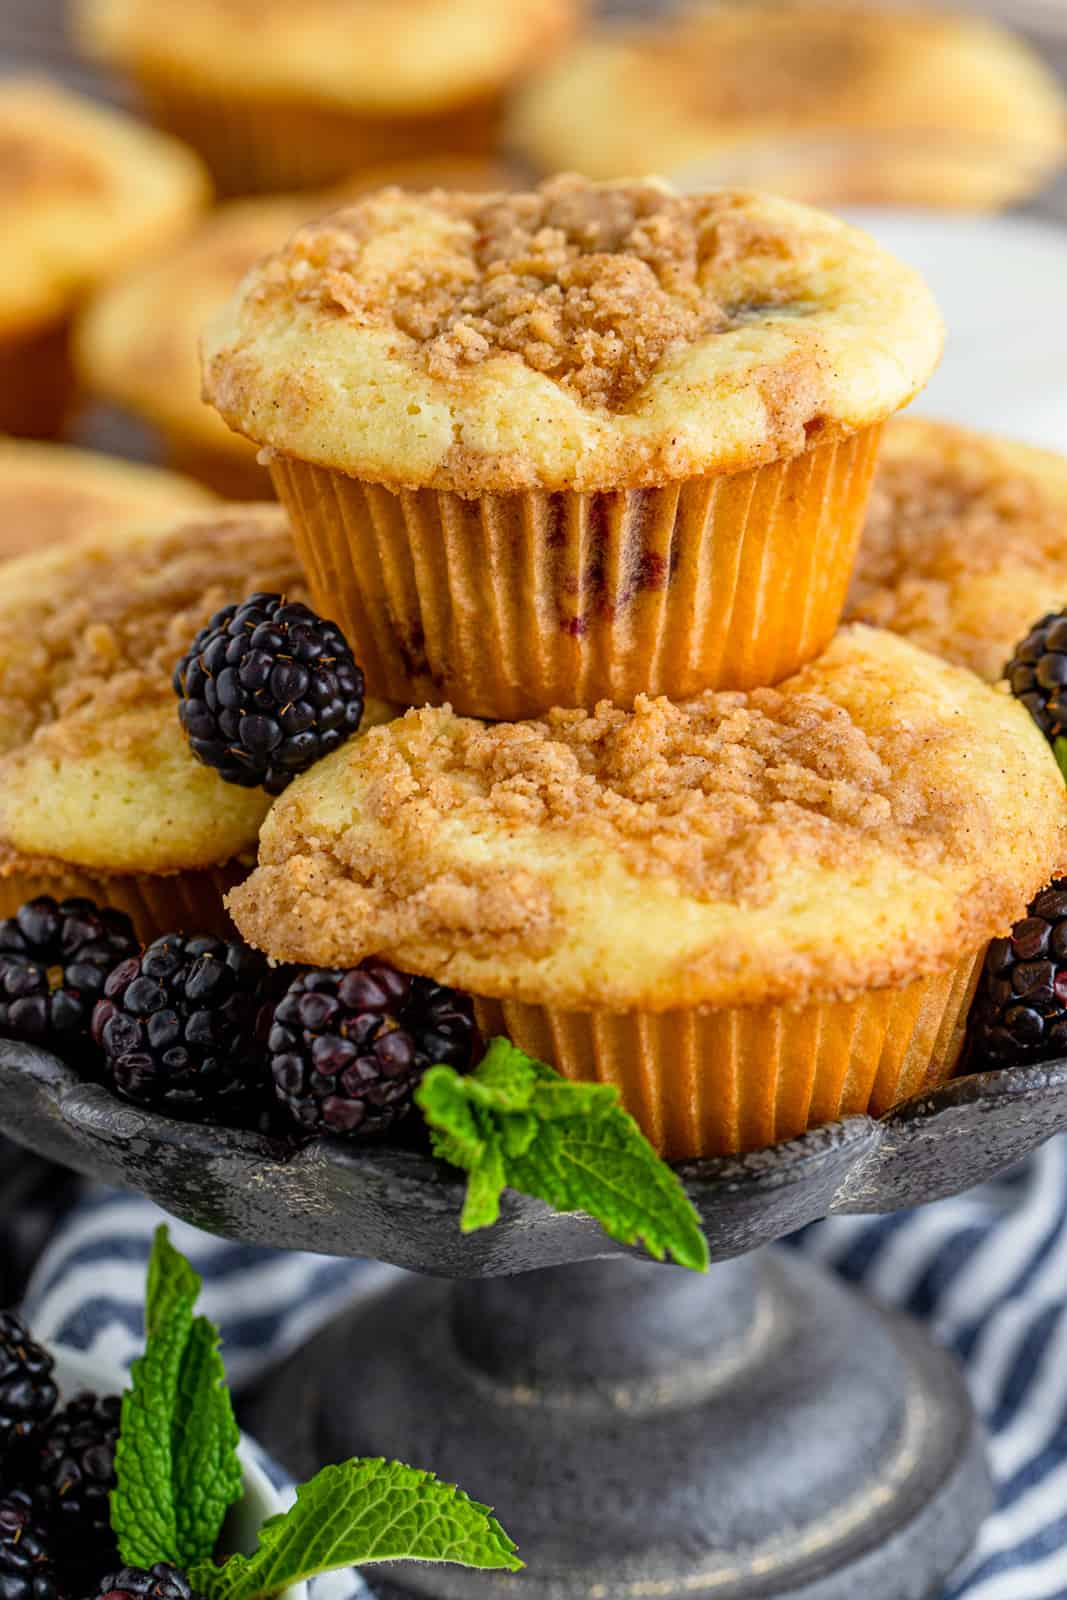 Stacked Blackberry Muffins on platter with fresh blackberries and mint